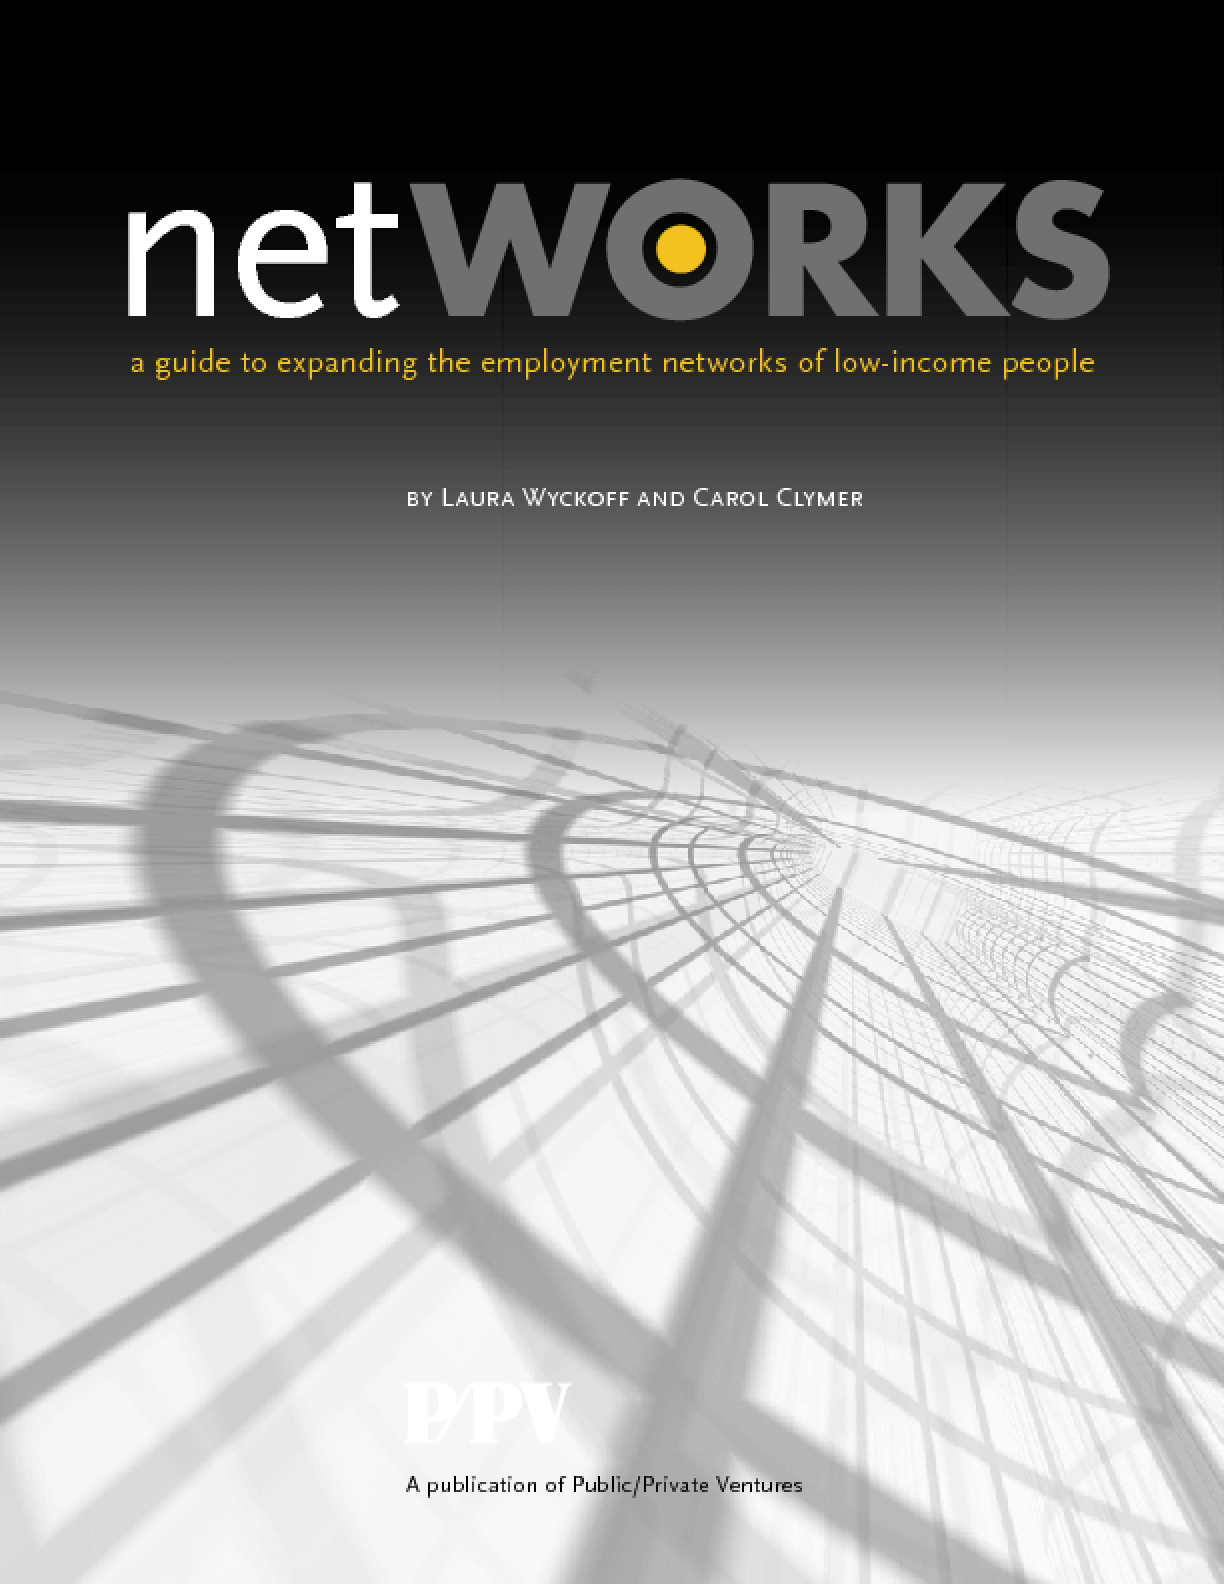 netWORKS: A Guide to Expanding the Employment Networks of Low-Income People